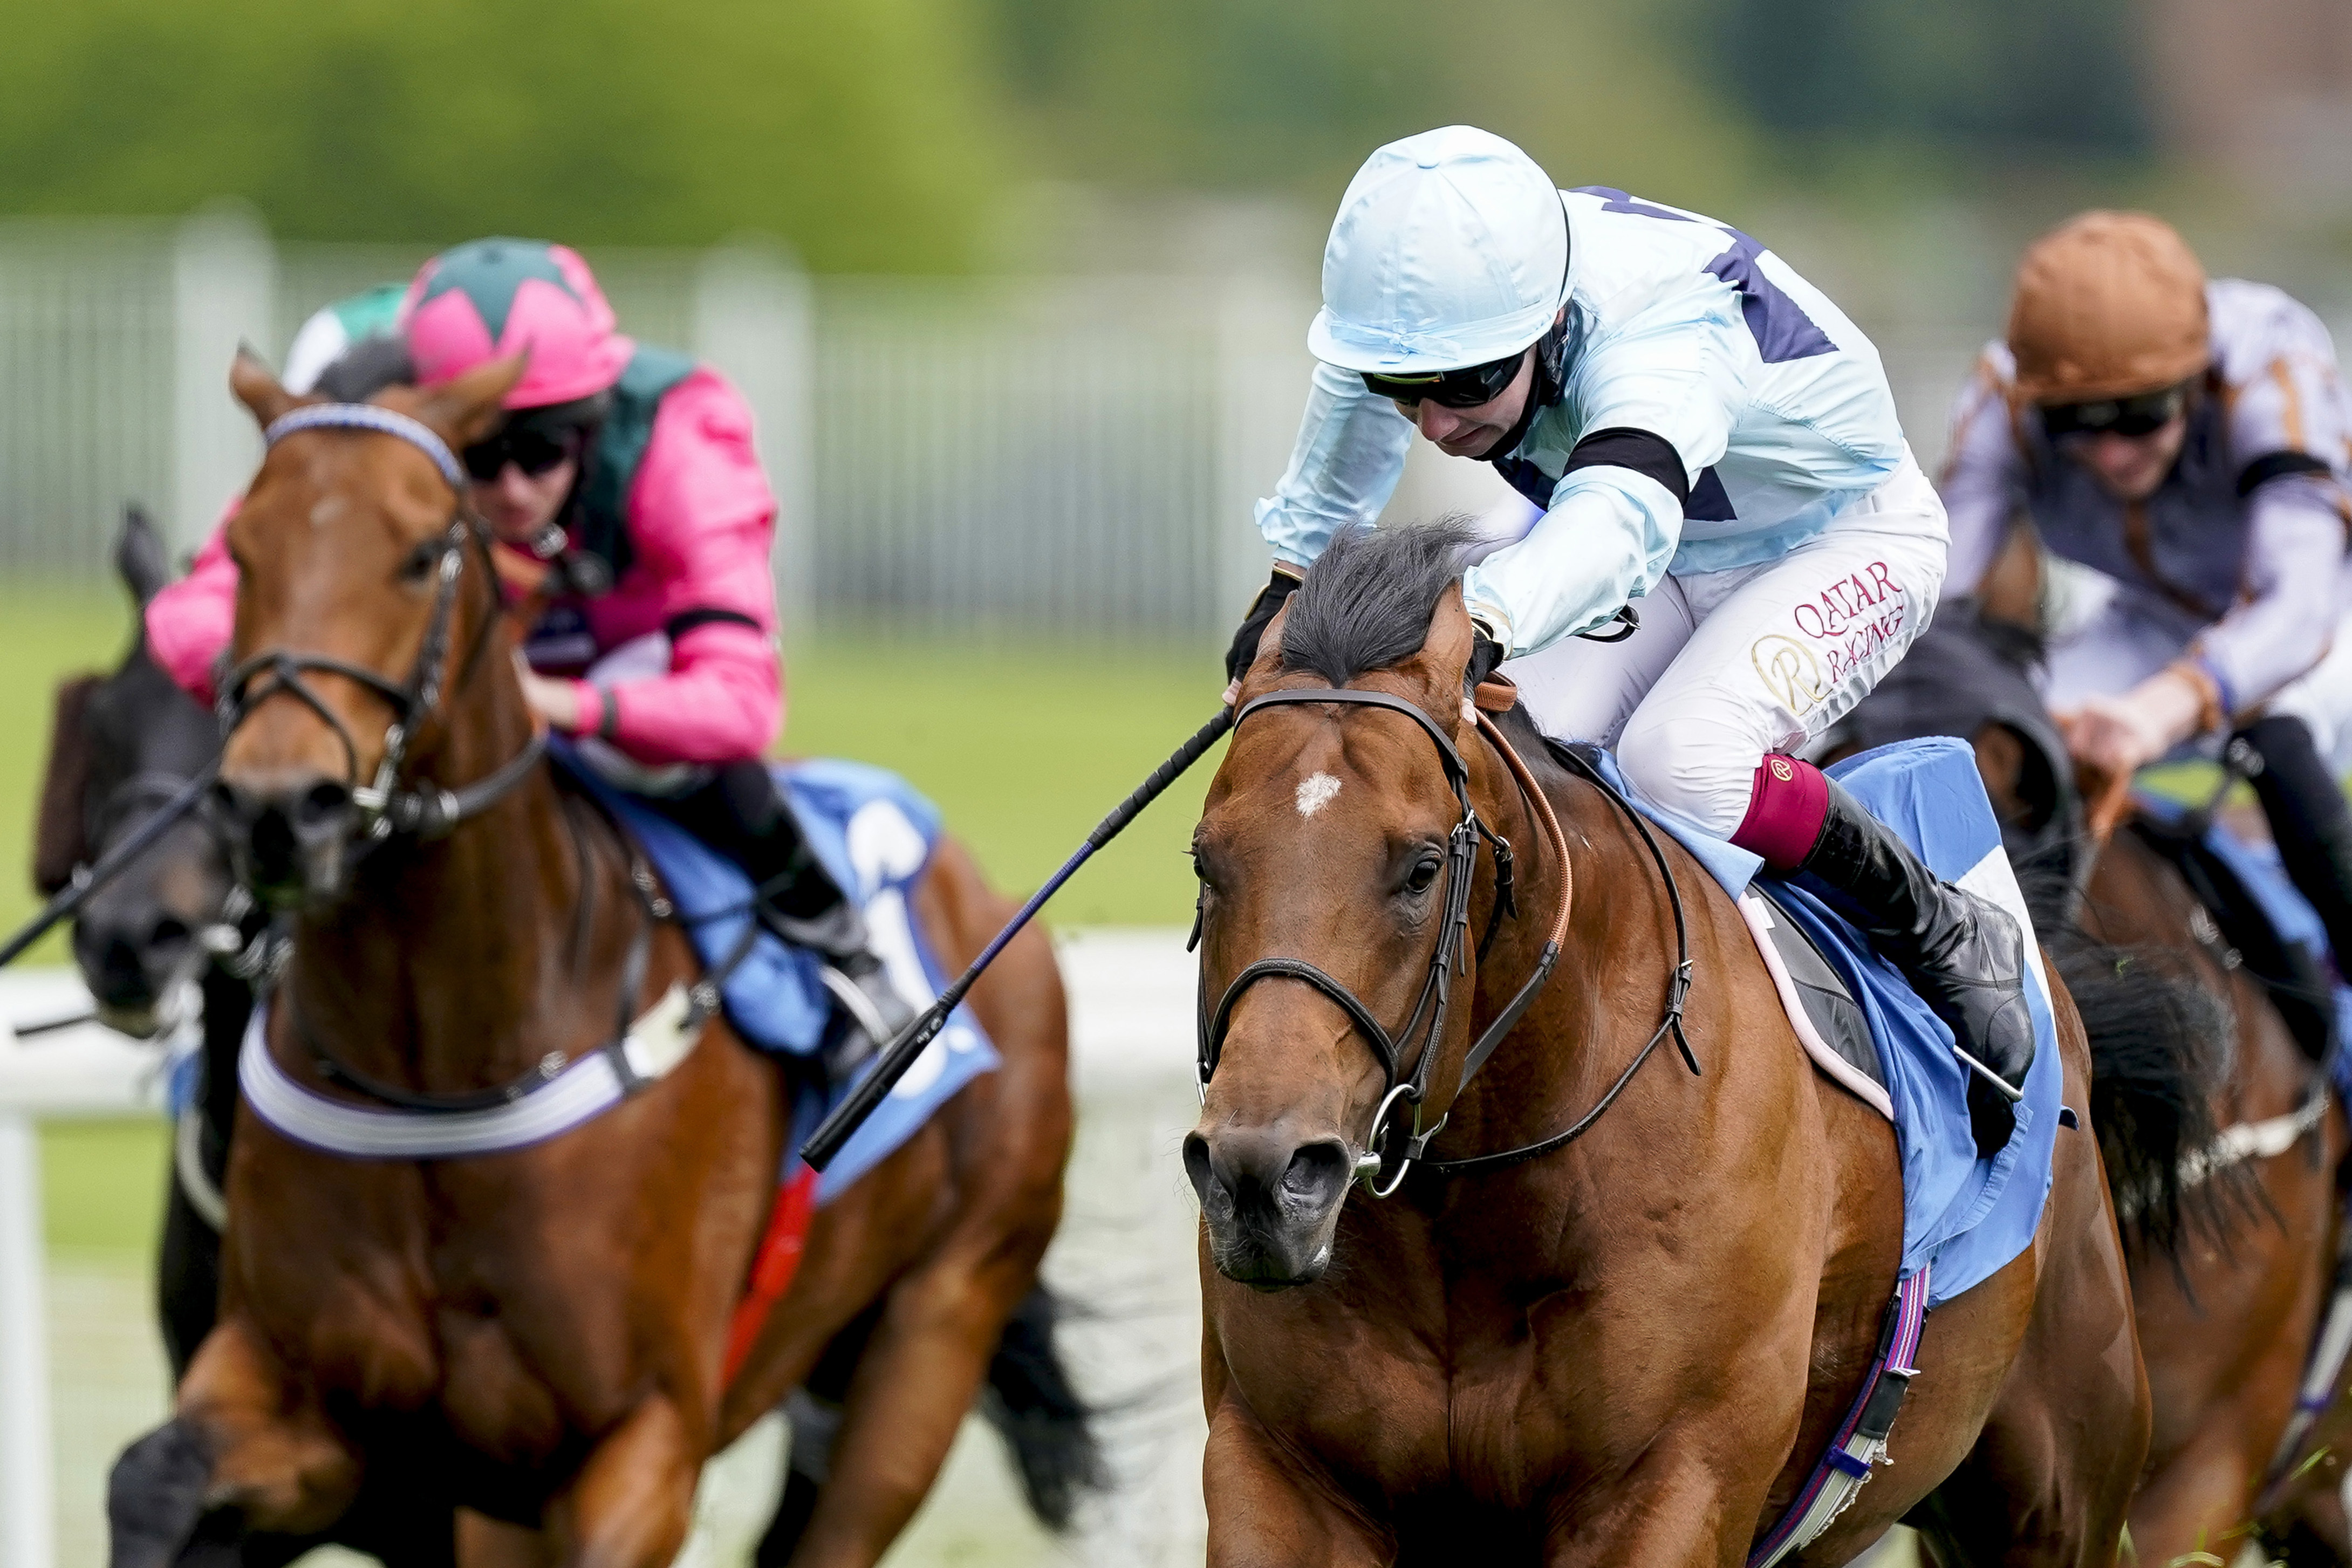 Starman is the favourite for next week's Diamond Jubilee at Royal Ascot